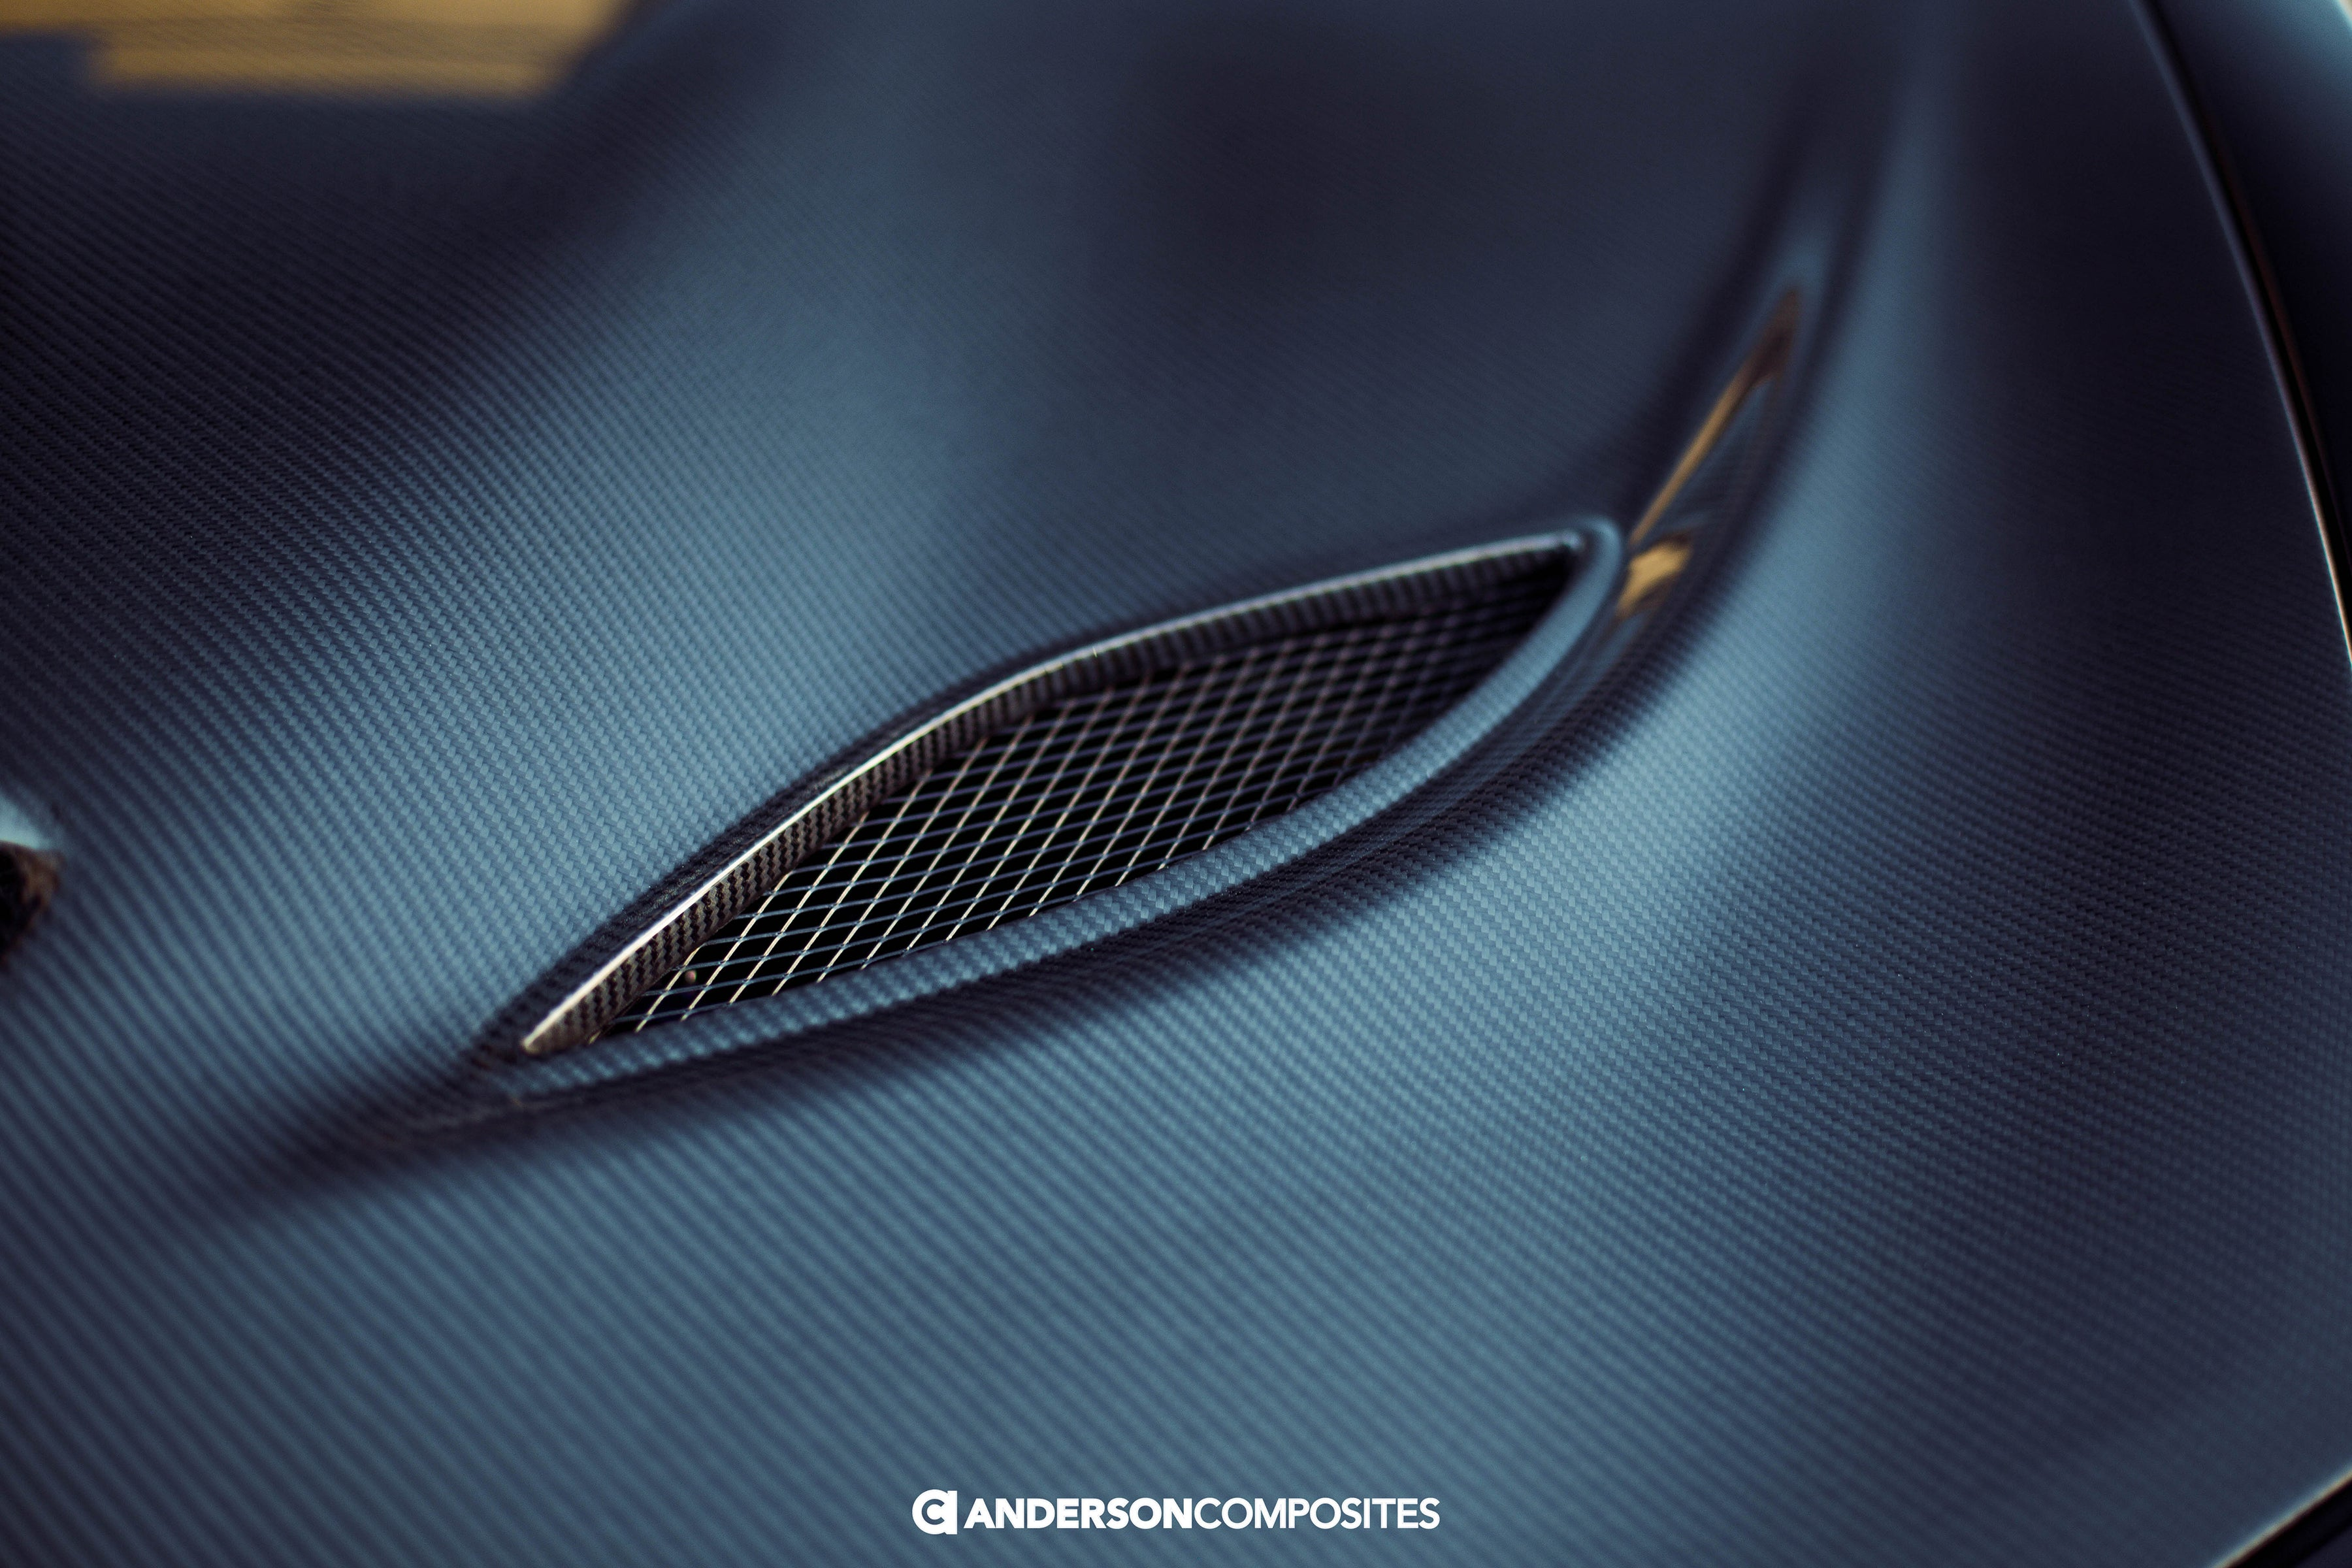 2015 2020 Dodge Charger Hellcat Type Oe Carbon Fiber Hood Anderson Composites